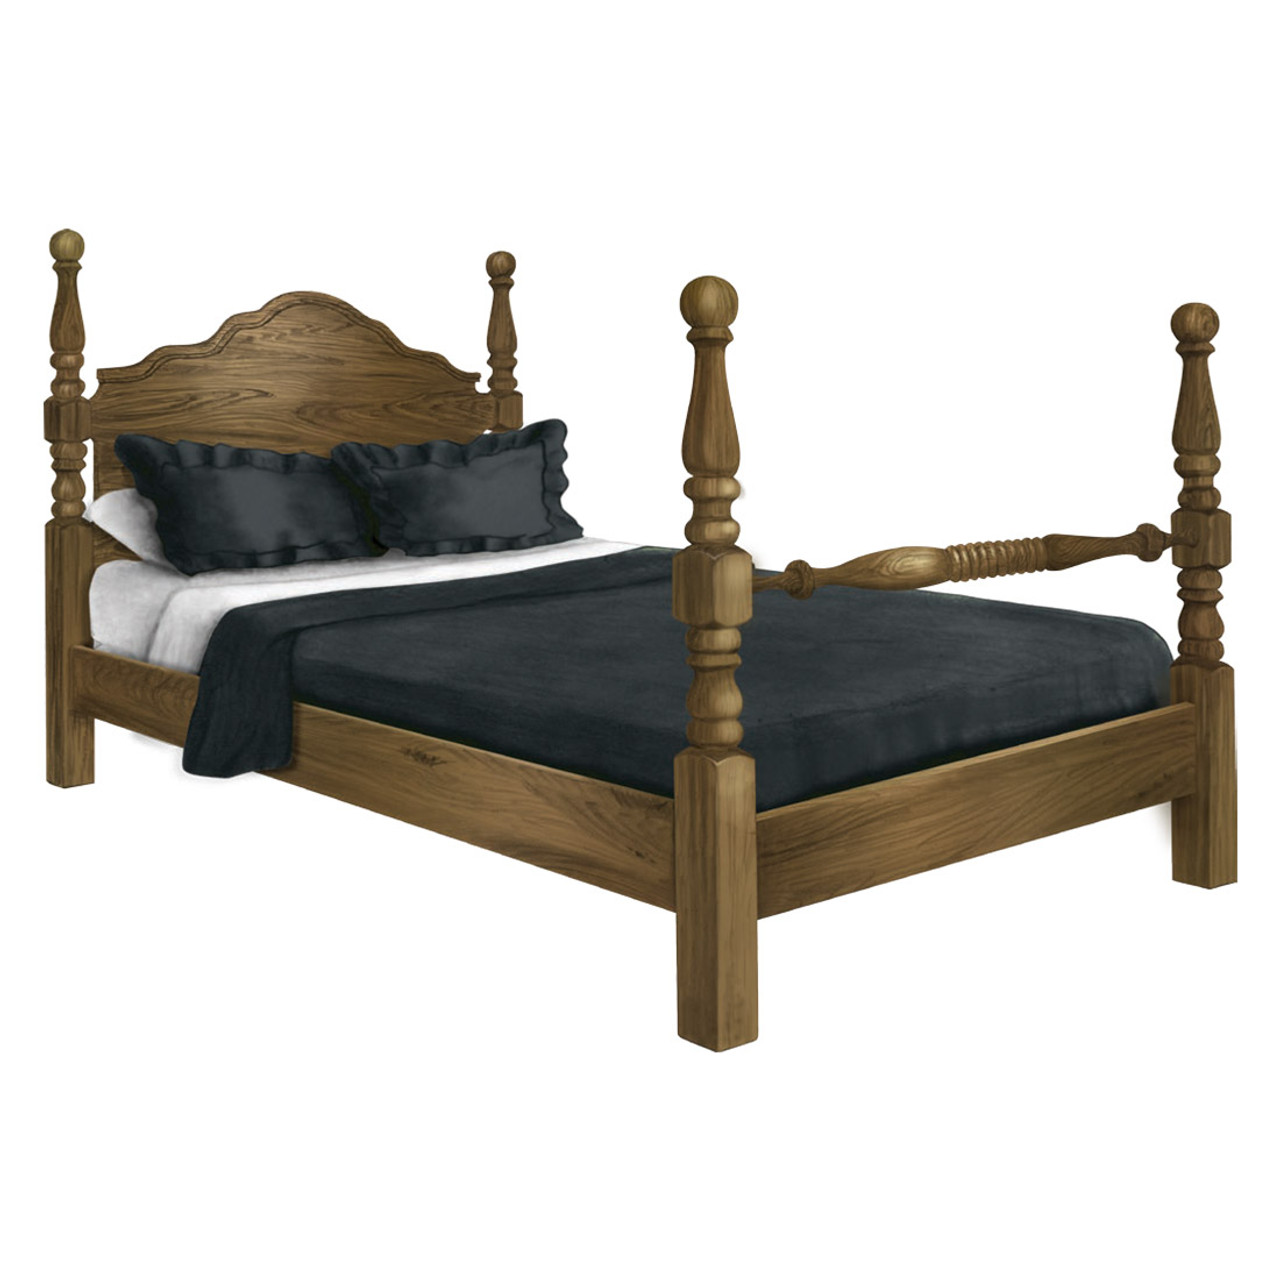 Heirloom Cannonball Bed - Cherry Valley Furniture